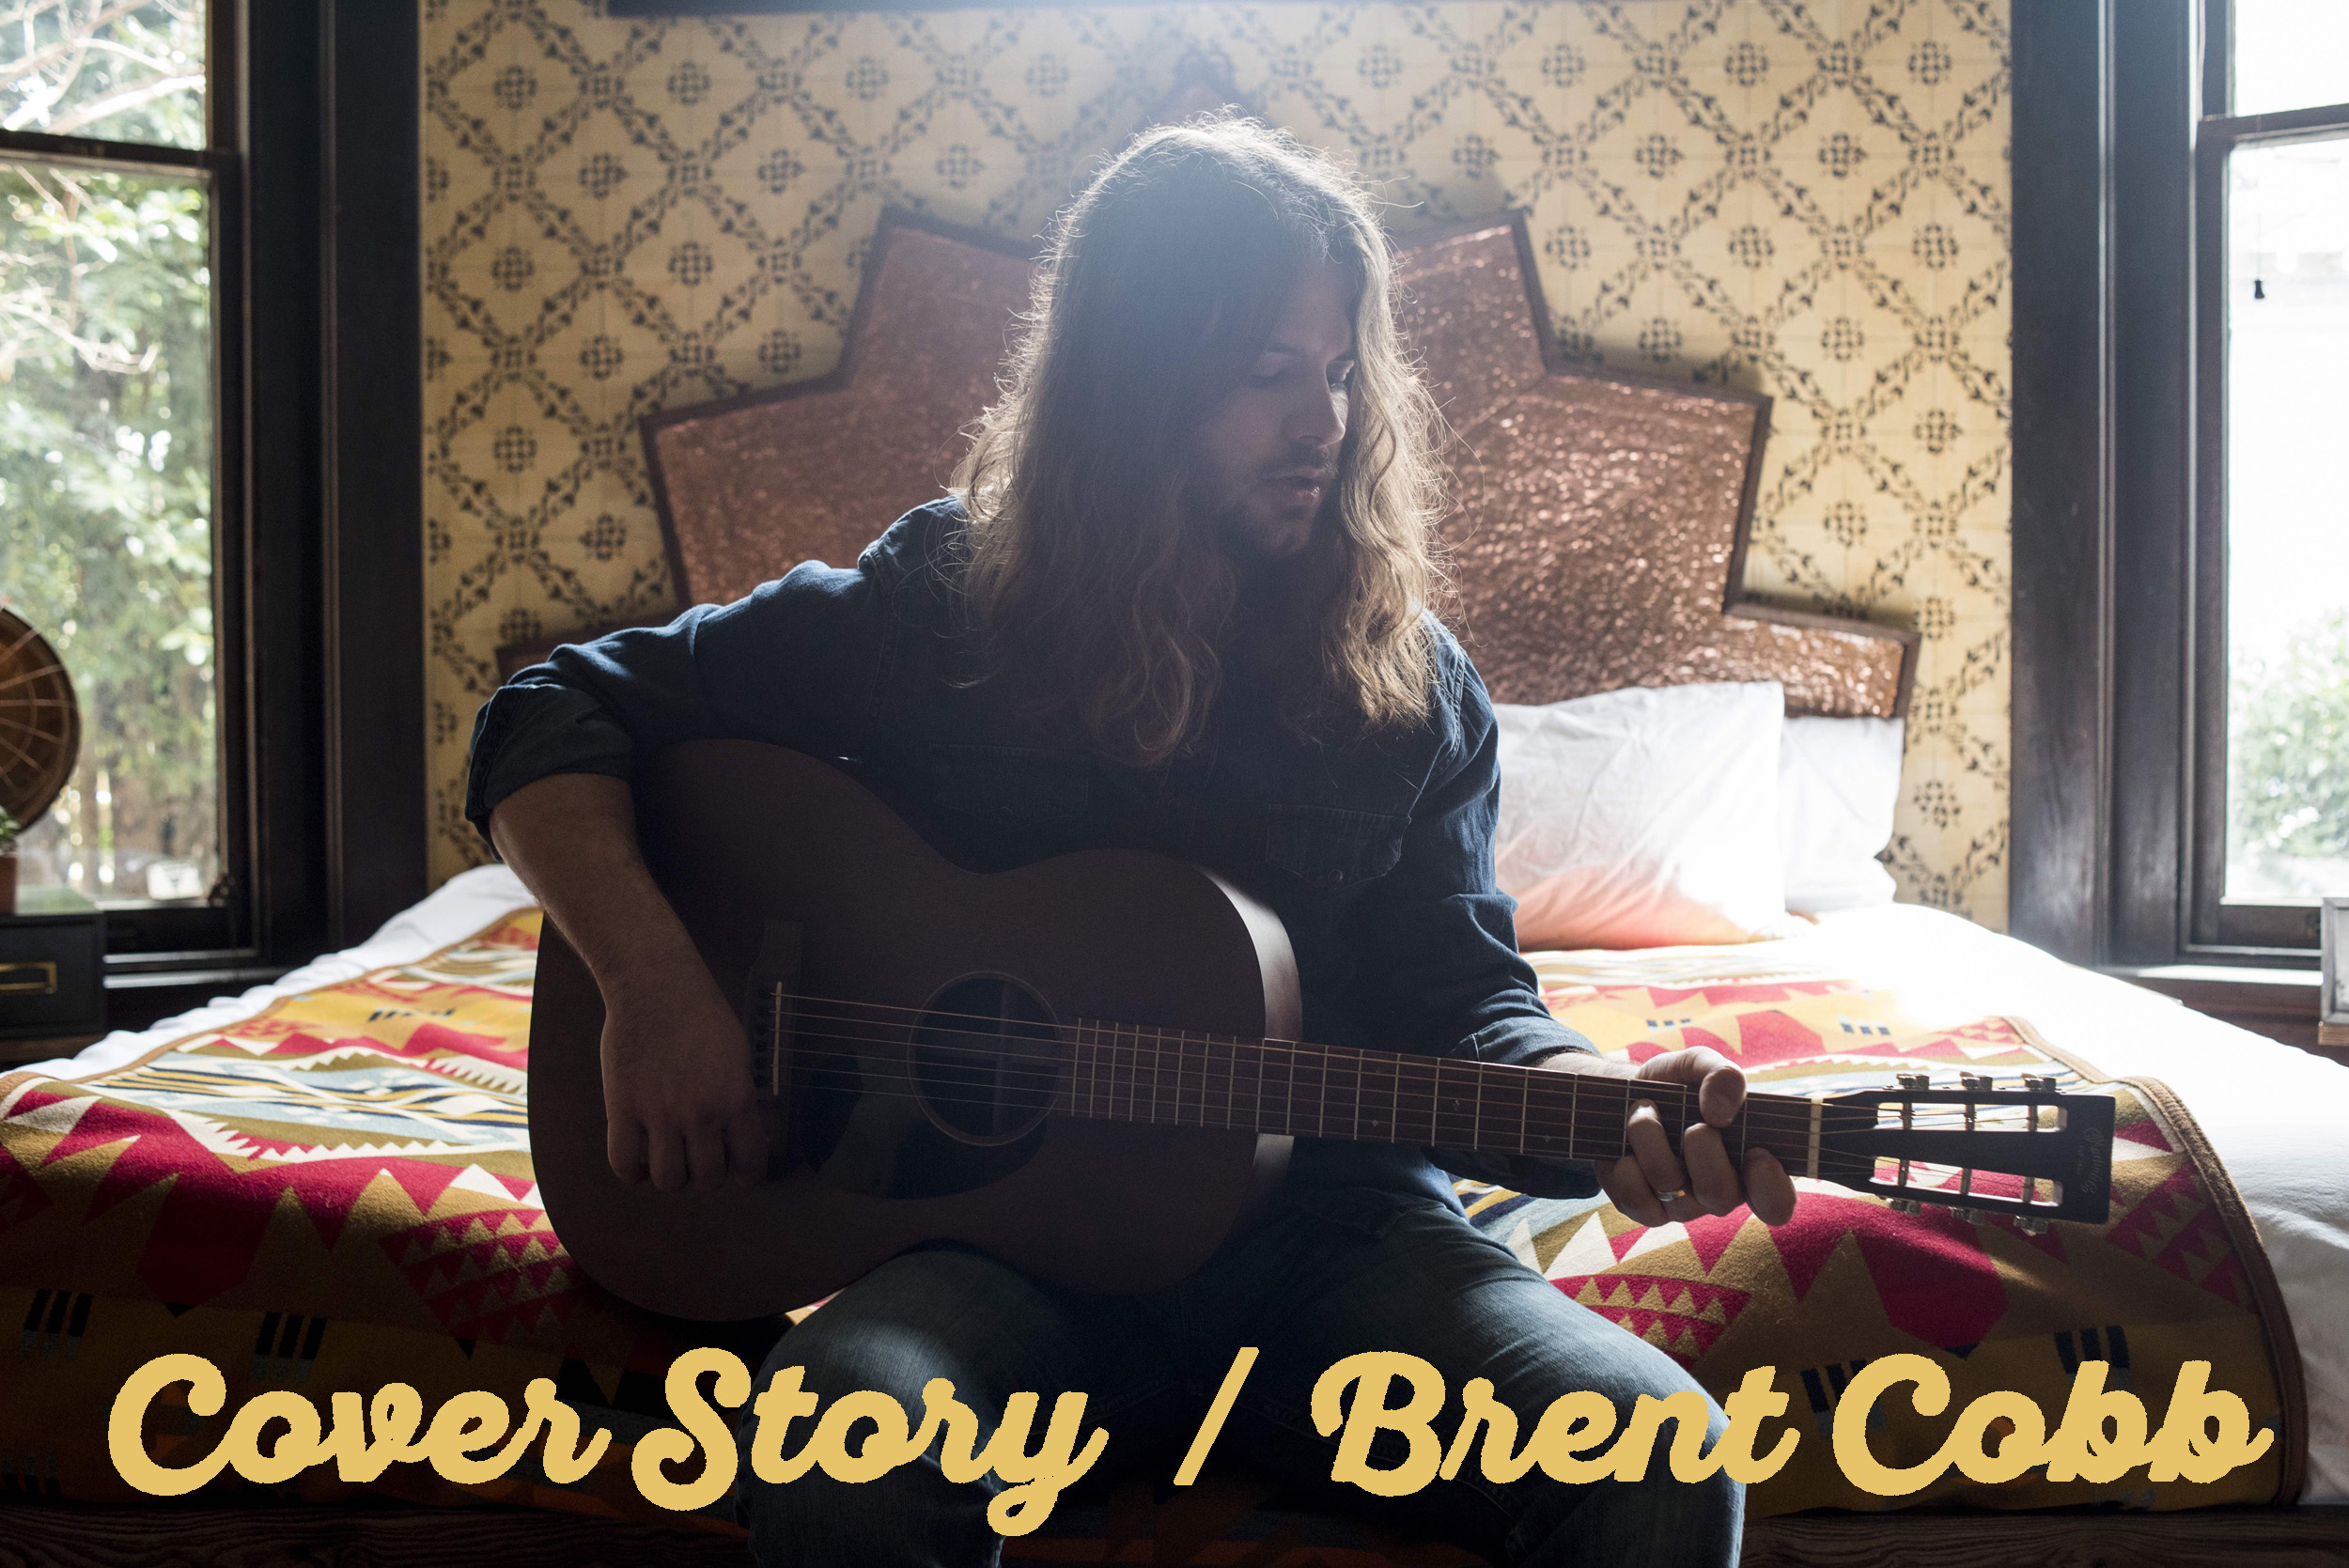 Georgia on His Mind: A Conversation with Brent Cobb